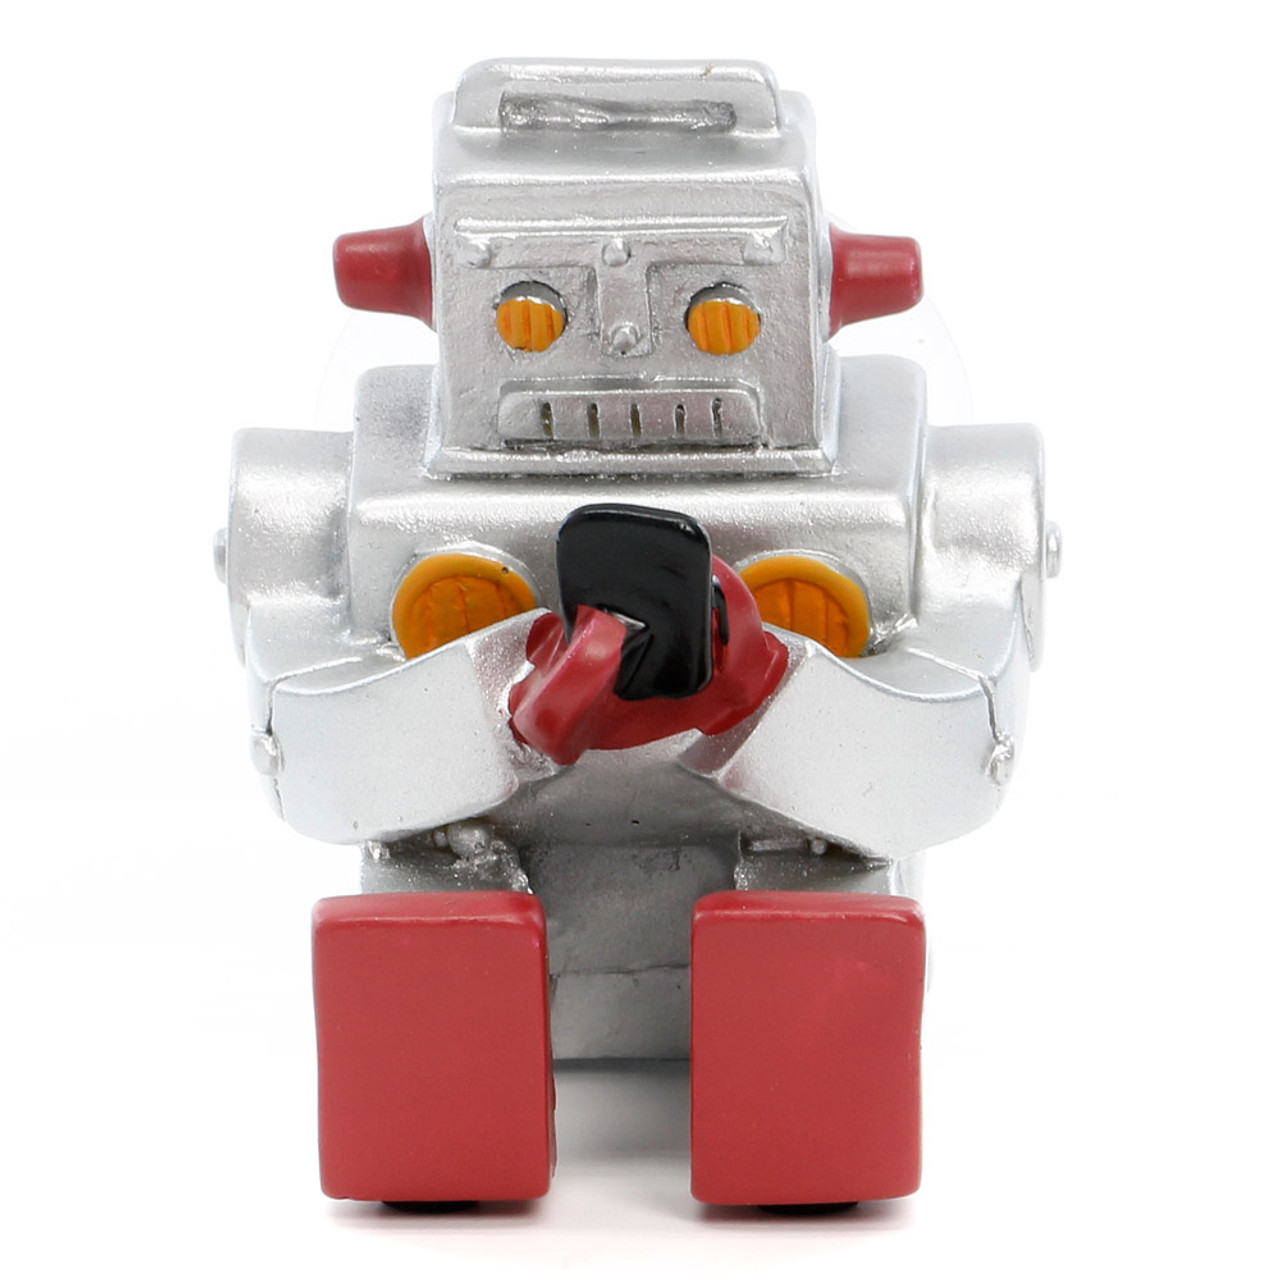 Seto Craft Motif Hand Painting Cellphone / Mobile Device Stand - Mini Robot ( Front View )